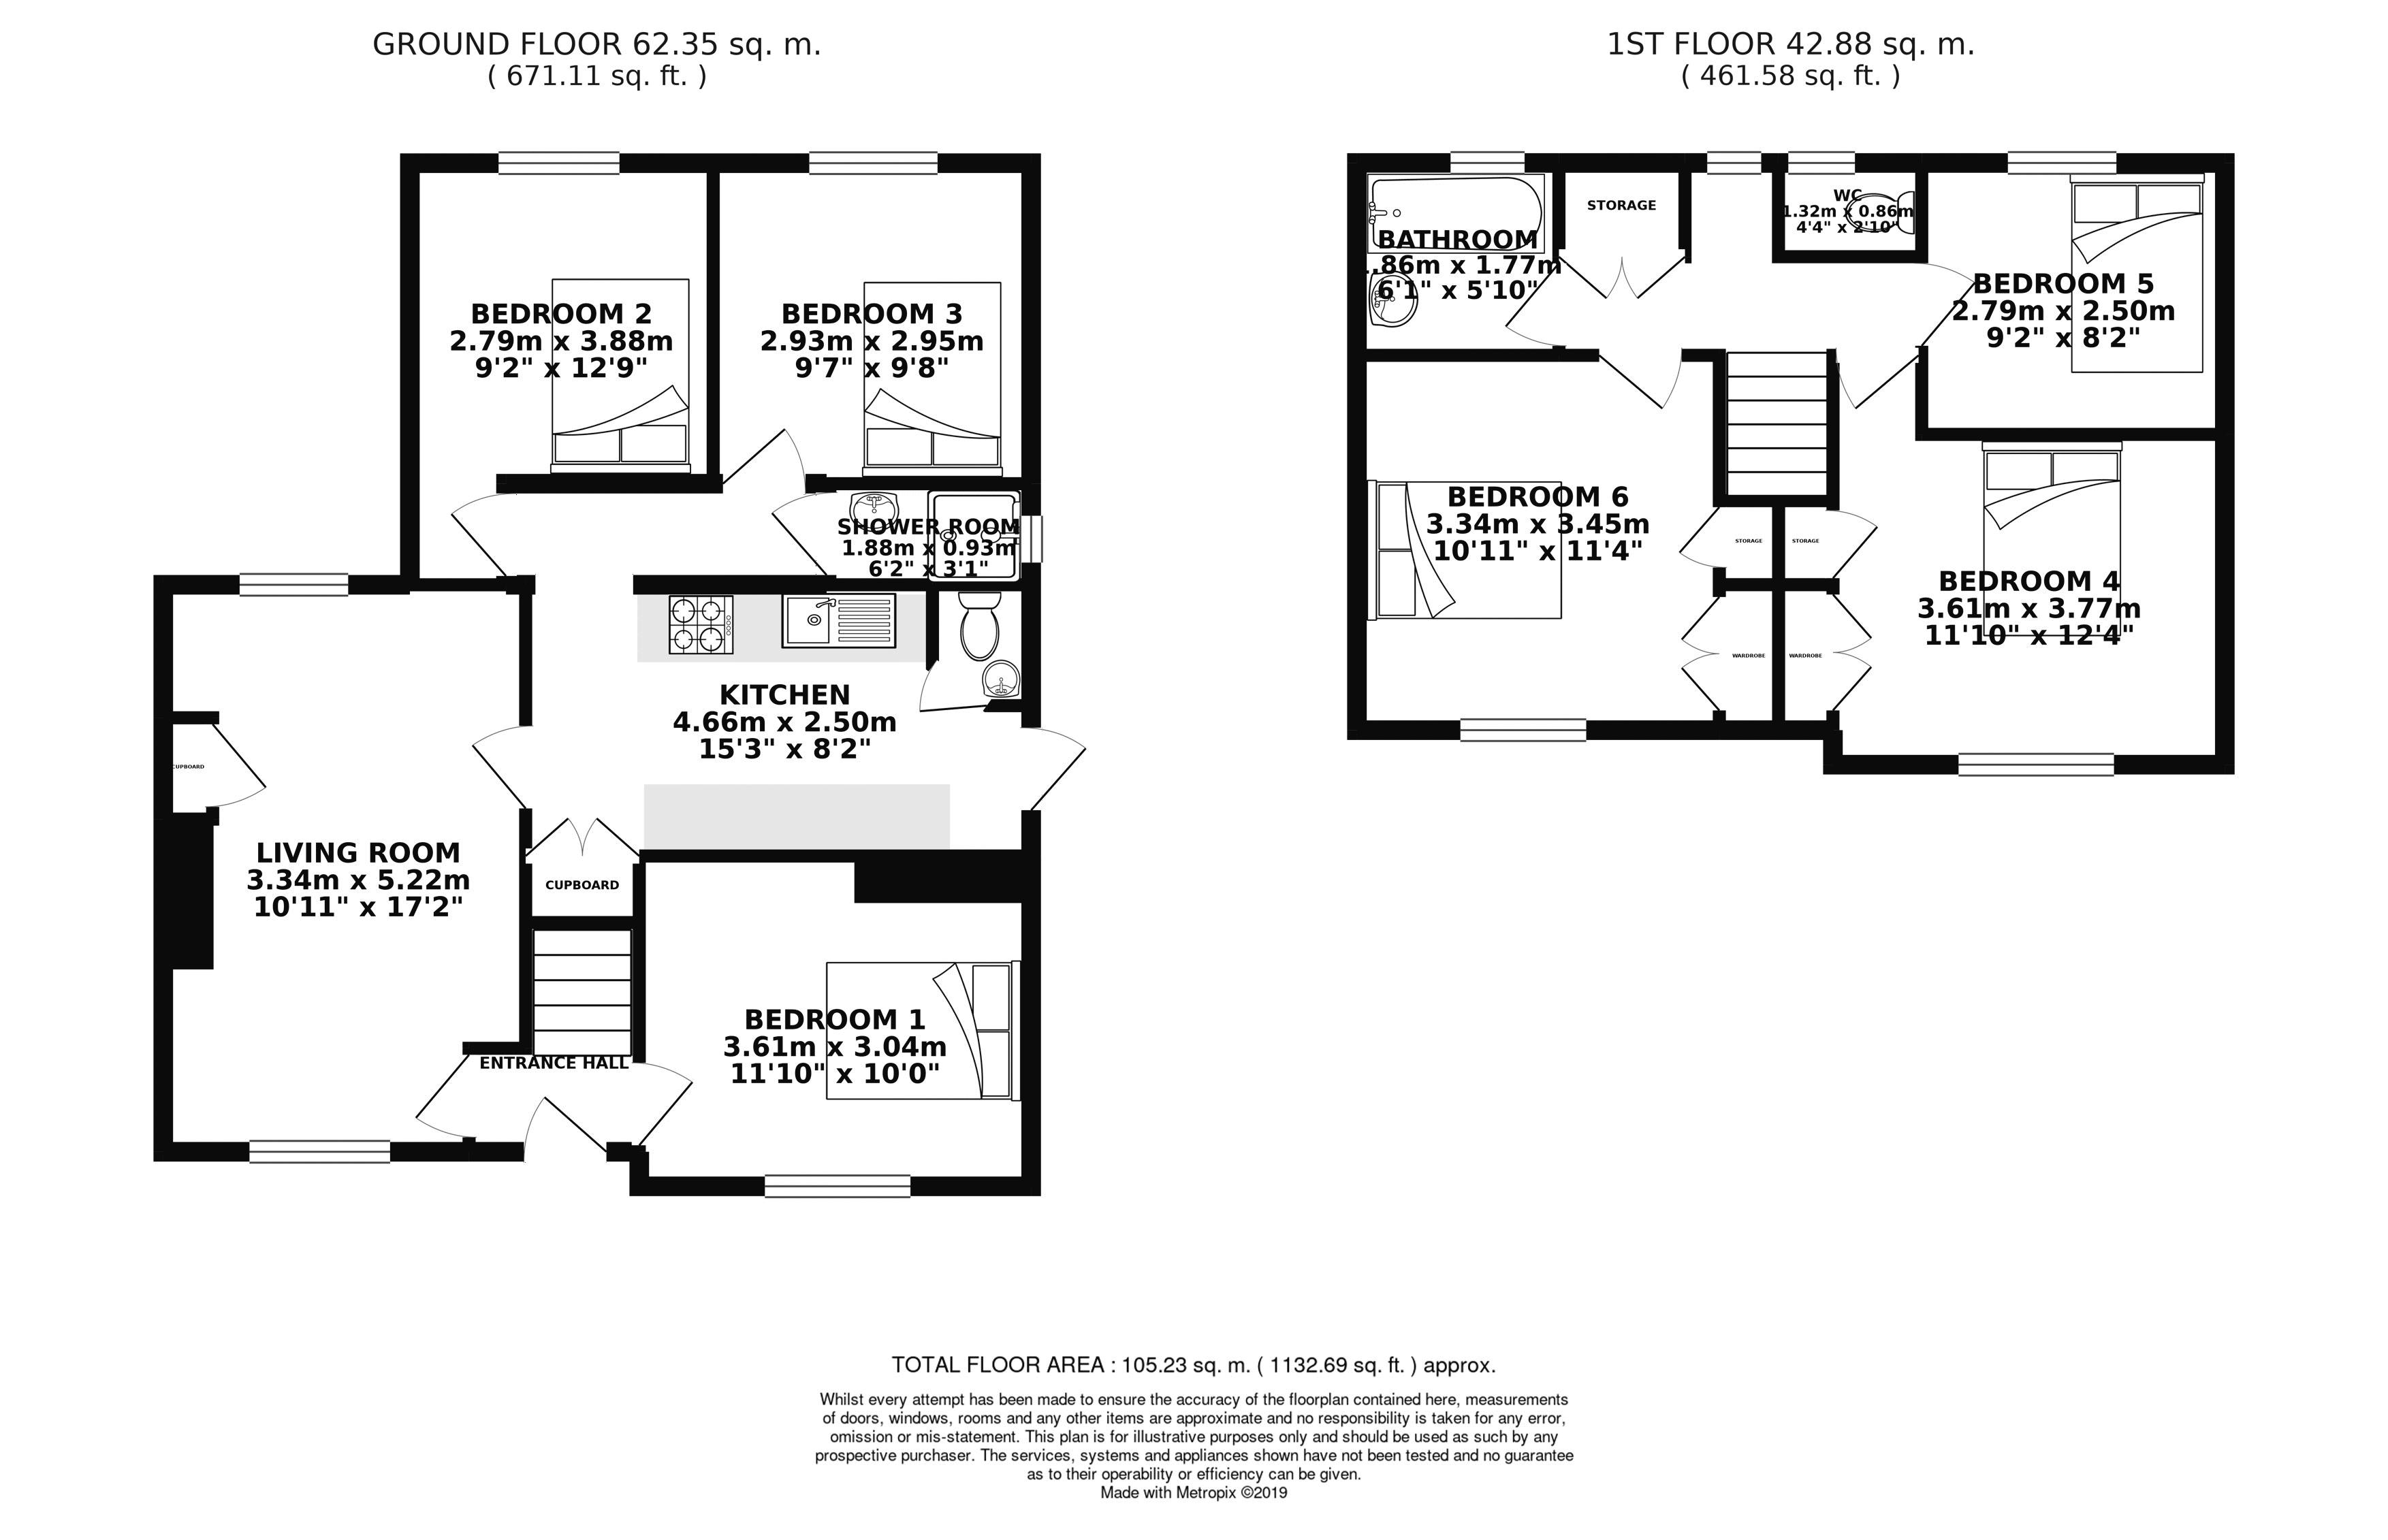 Floor plans for Hillside, Brighton property for sale in Bevendean, Brighton by Coapt